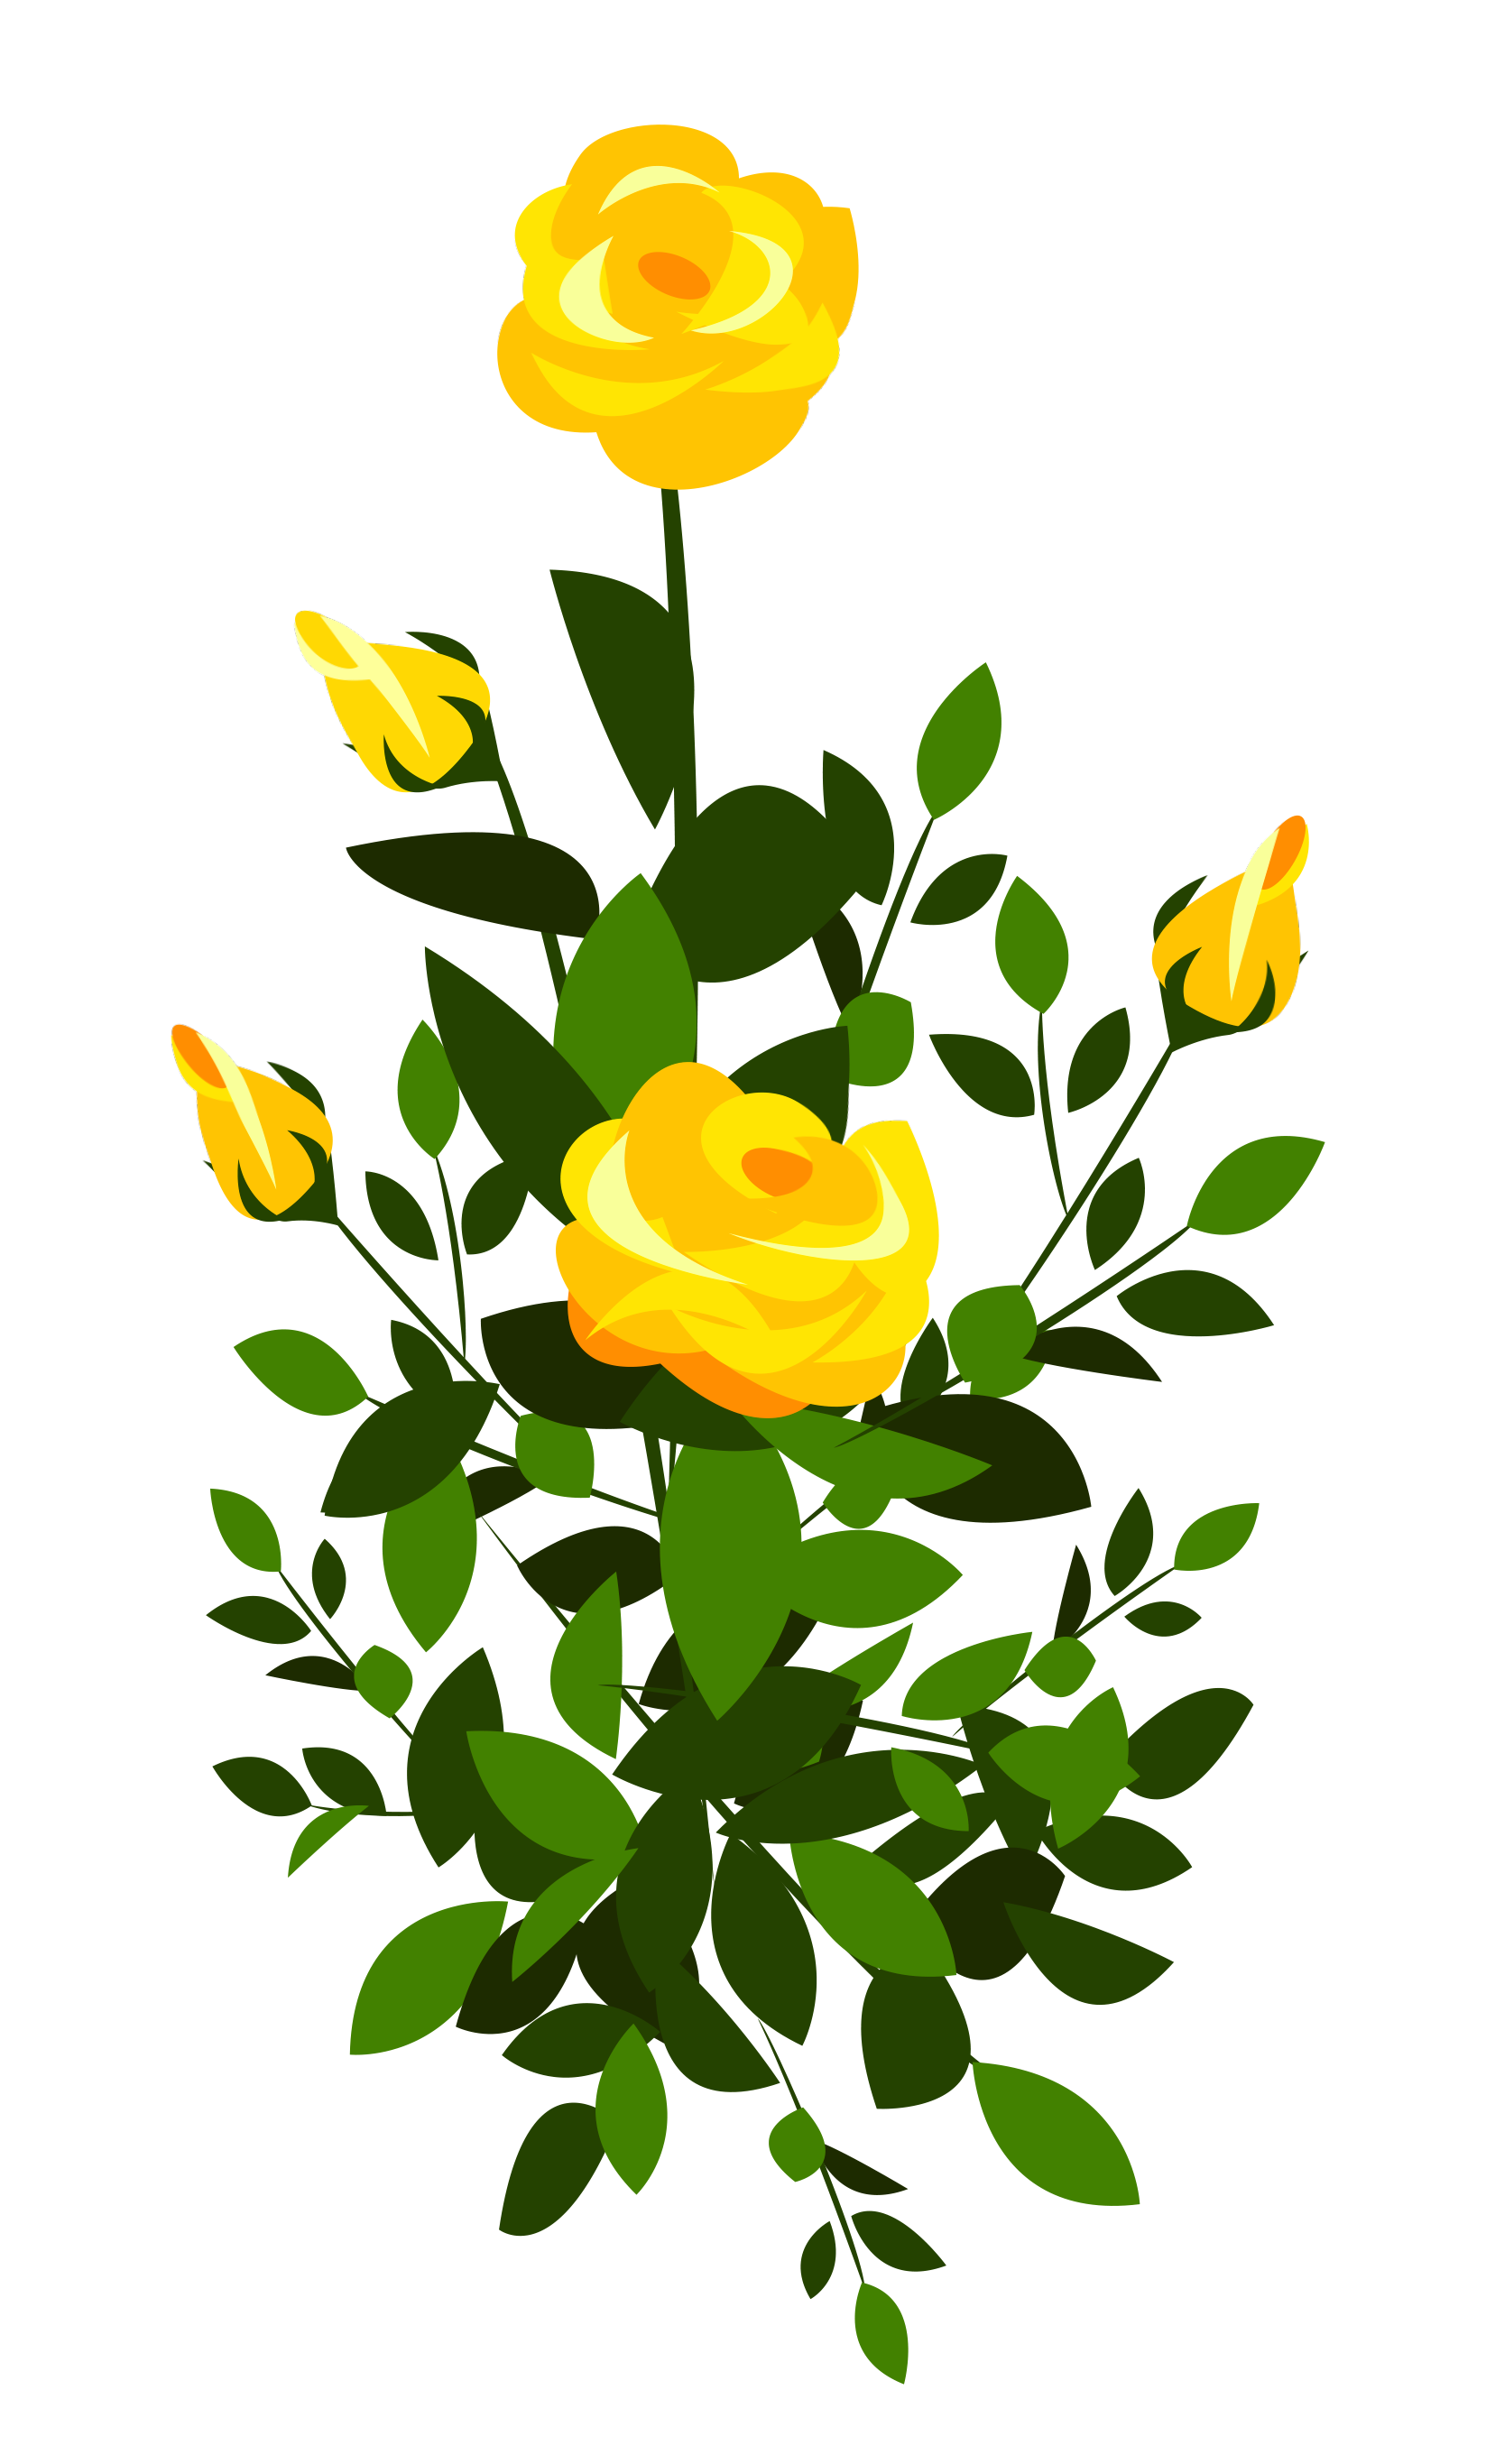 Free yellow flower clipart image black and white library Yellw Rose png Transparent images free gallery image black and white library